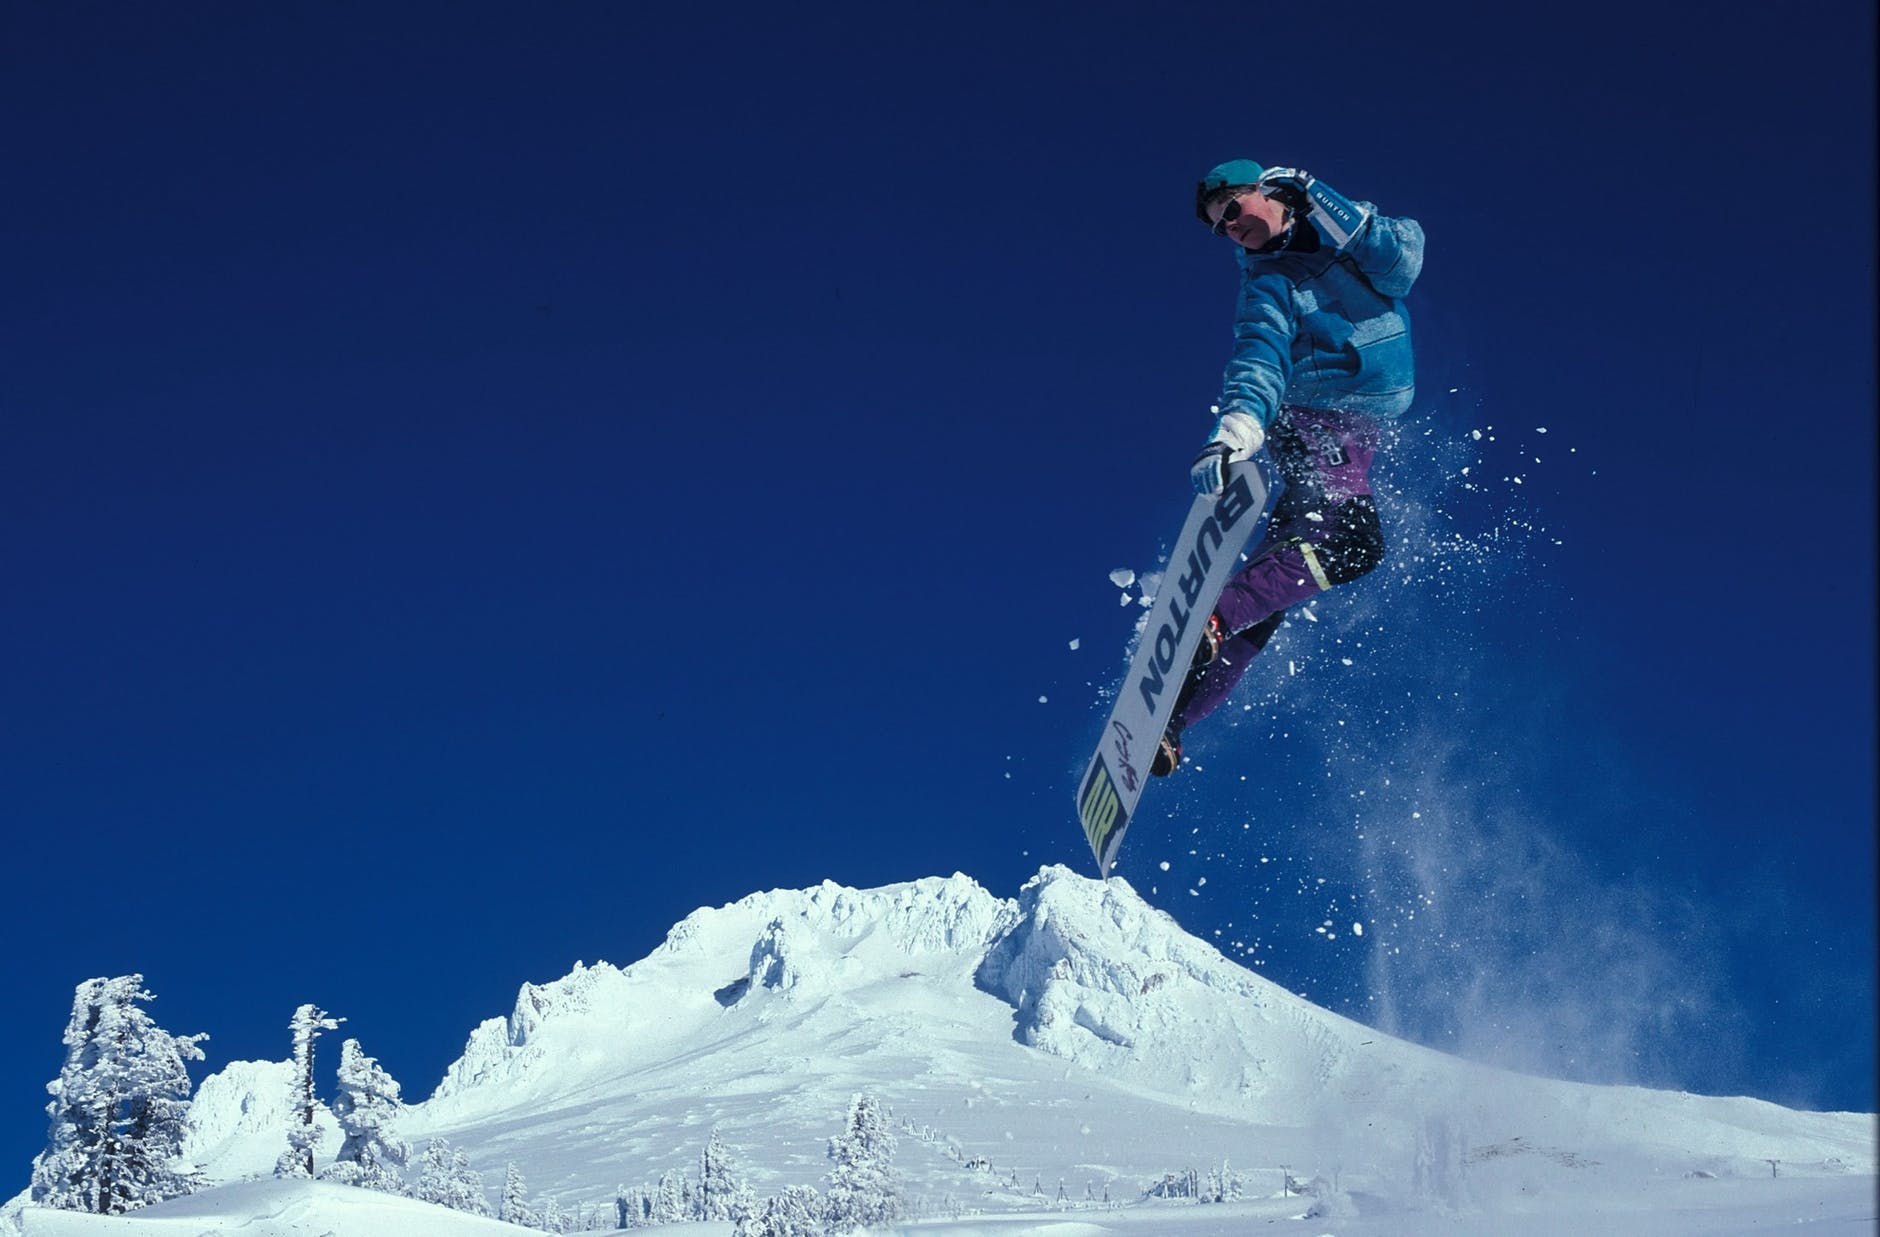 Snowboard with Burton Boards - Shop at Top Board Shops.com